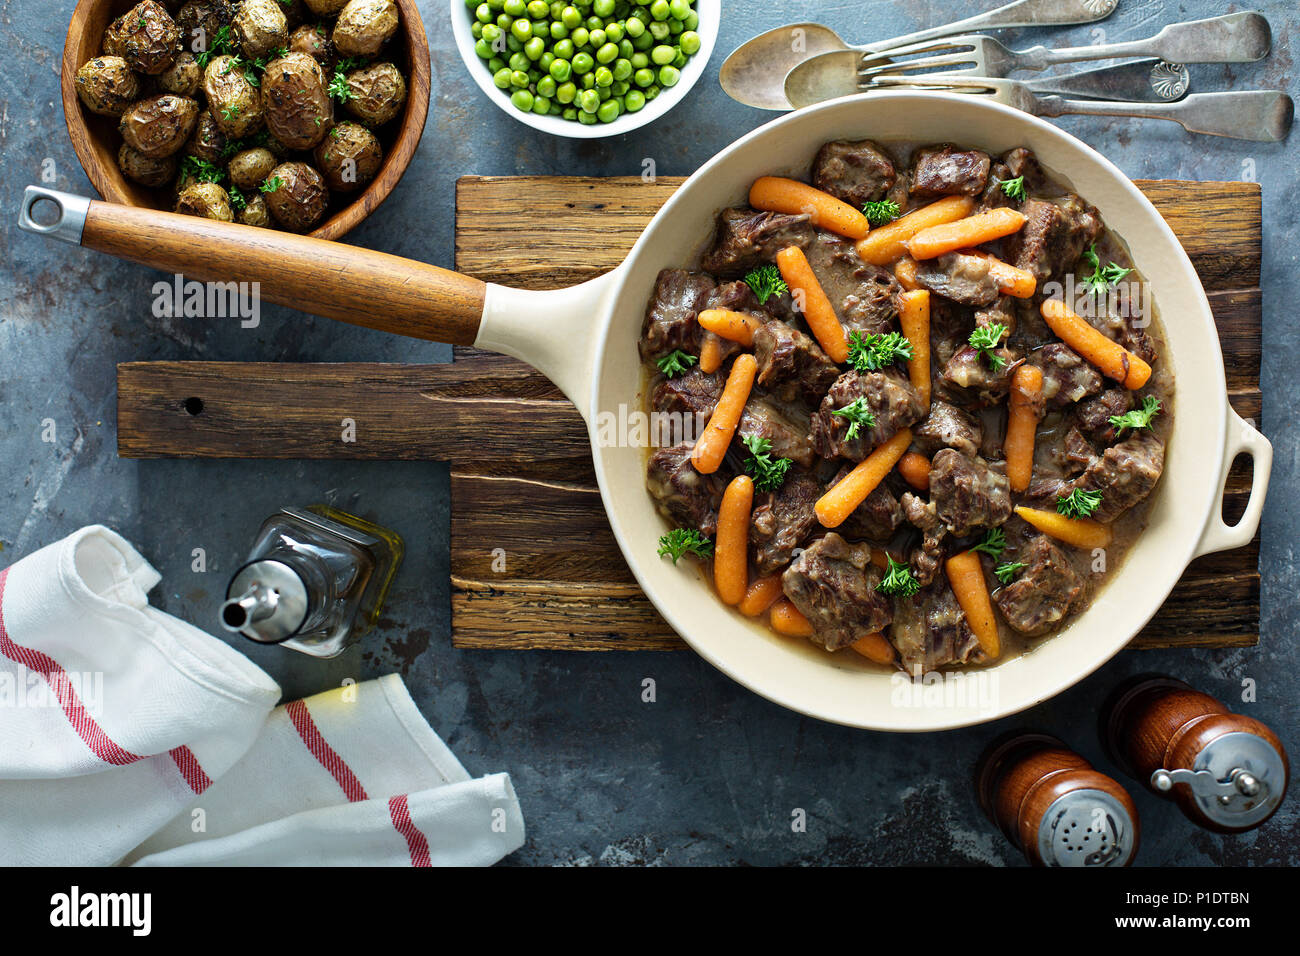 Beef stew with carrots and parsley - Stock Image